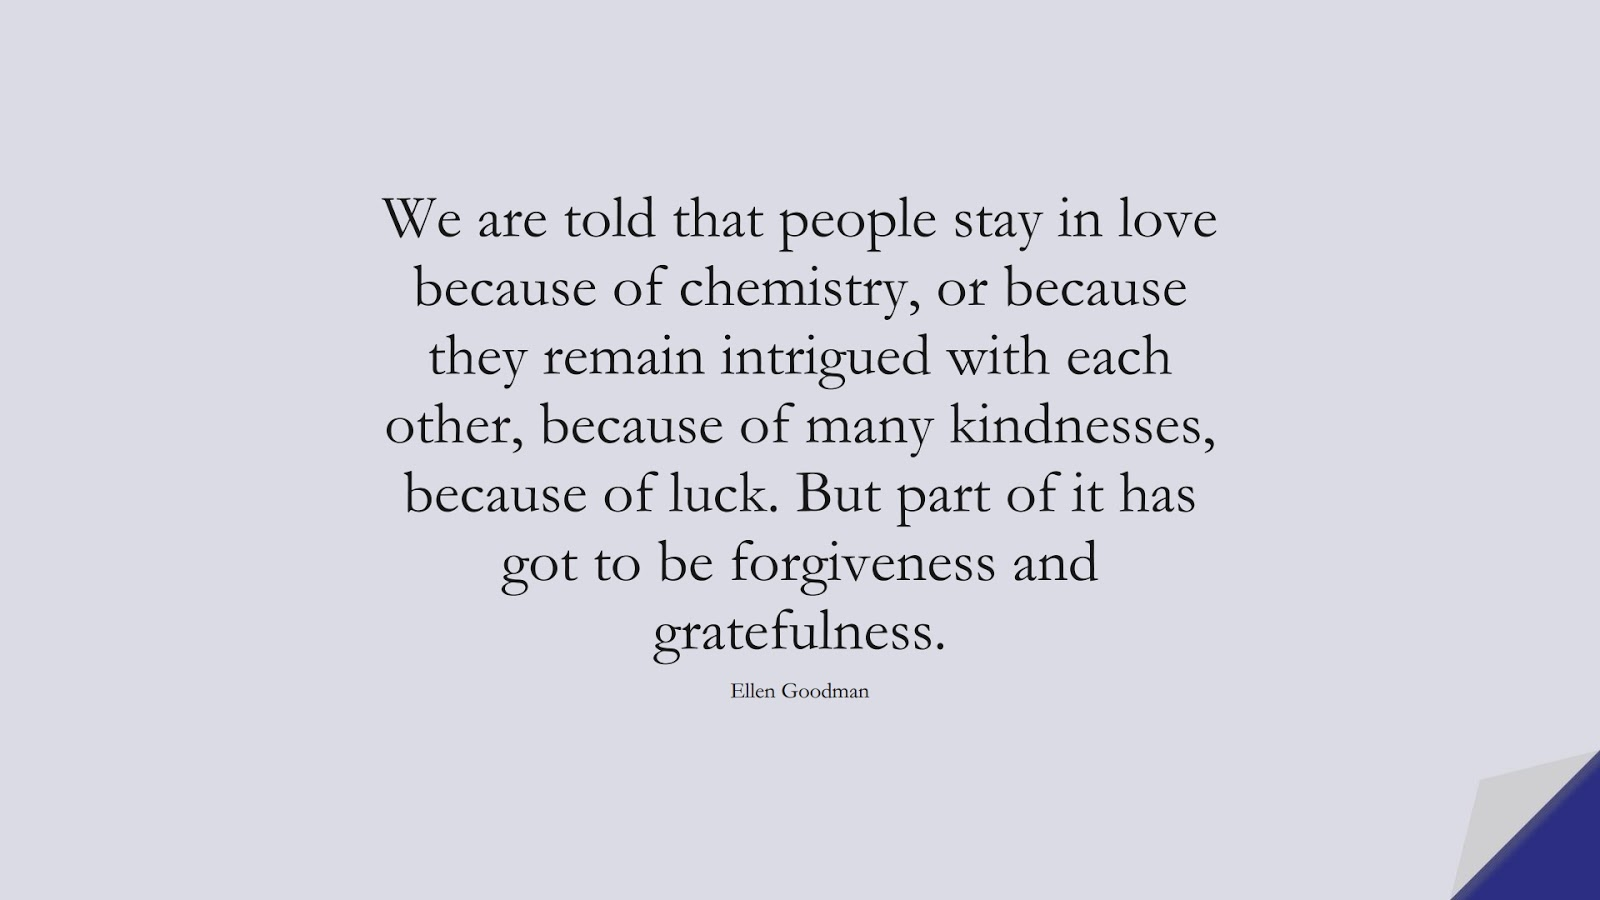 We are told that people stay in love because of chemistry, or because they remain intrigued with each other, because of many kindnesses, because of luck. But part of it has got to be forgiveness and gratefulness. (Ellen Goodman);  #LoveQuotes